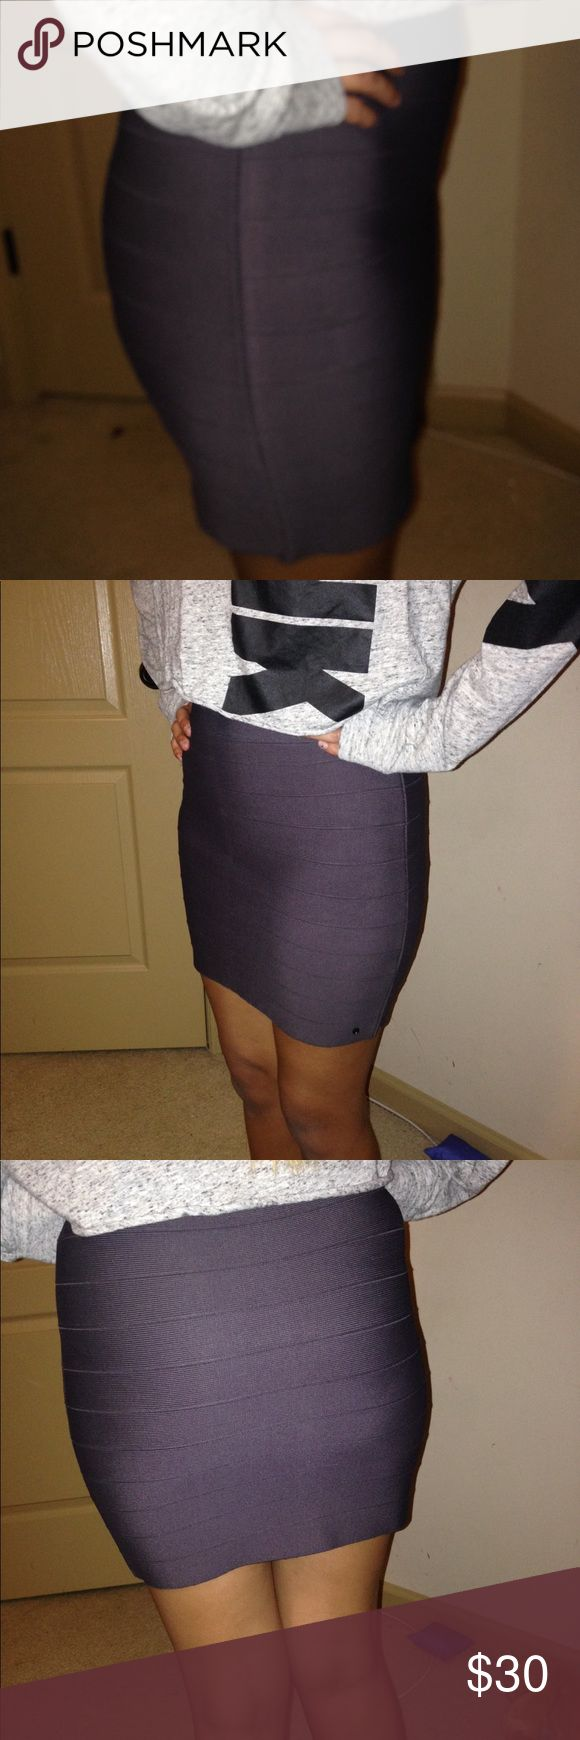 Guess bandage skirt Guess bandage skirt use but great condition! Looks new! It's been folded for long time barely used! Guess Skirts Mini